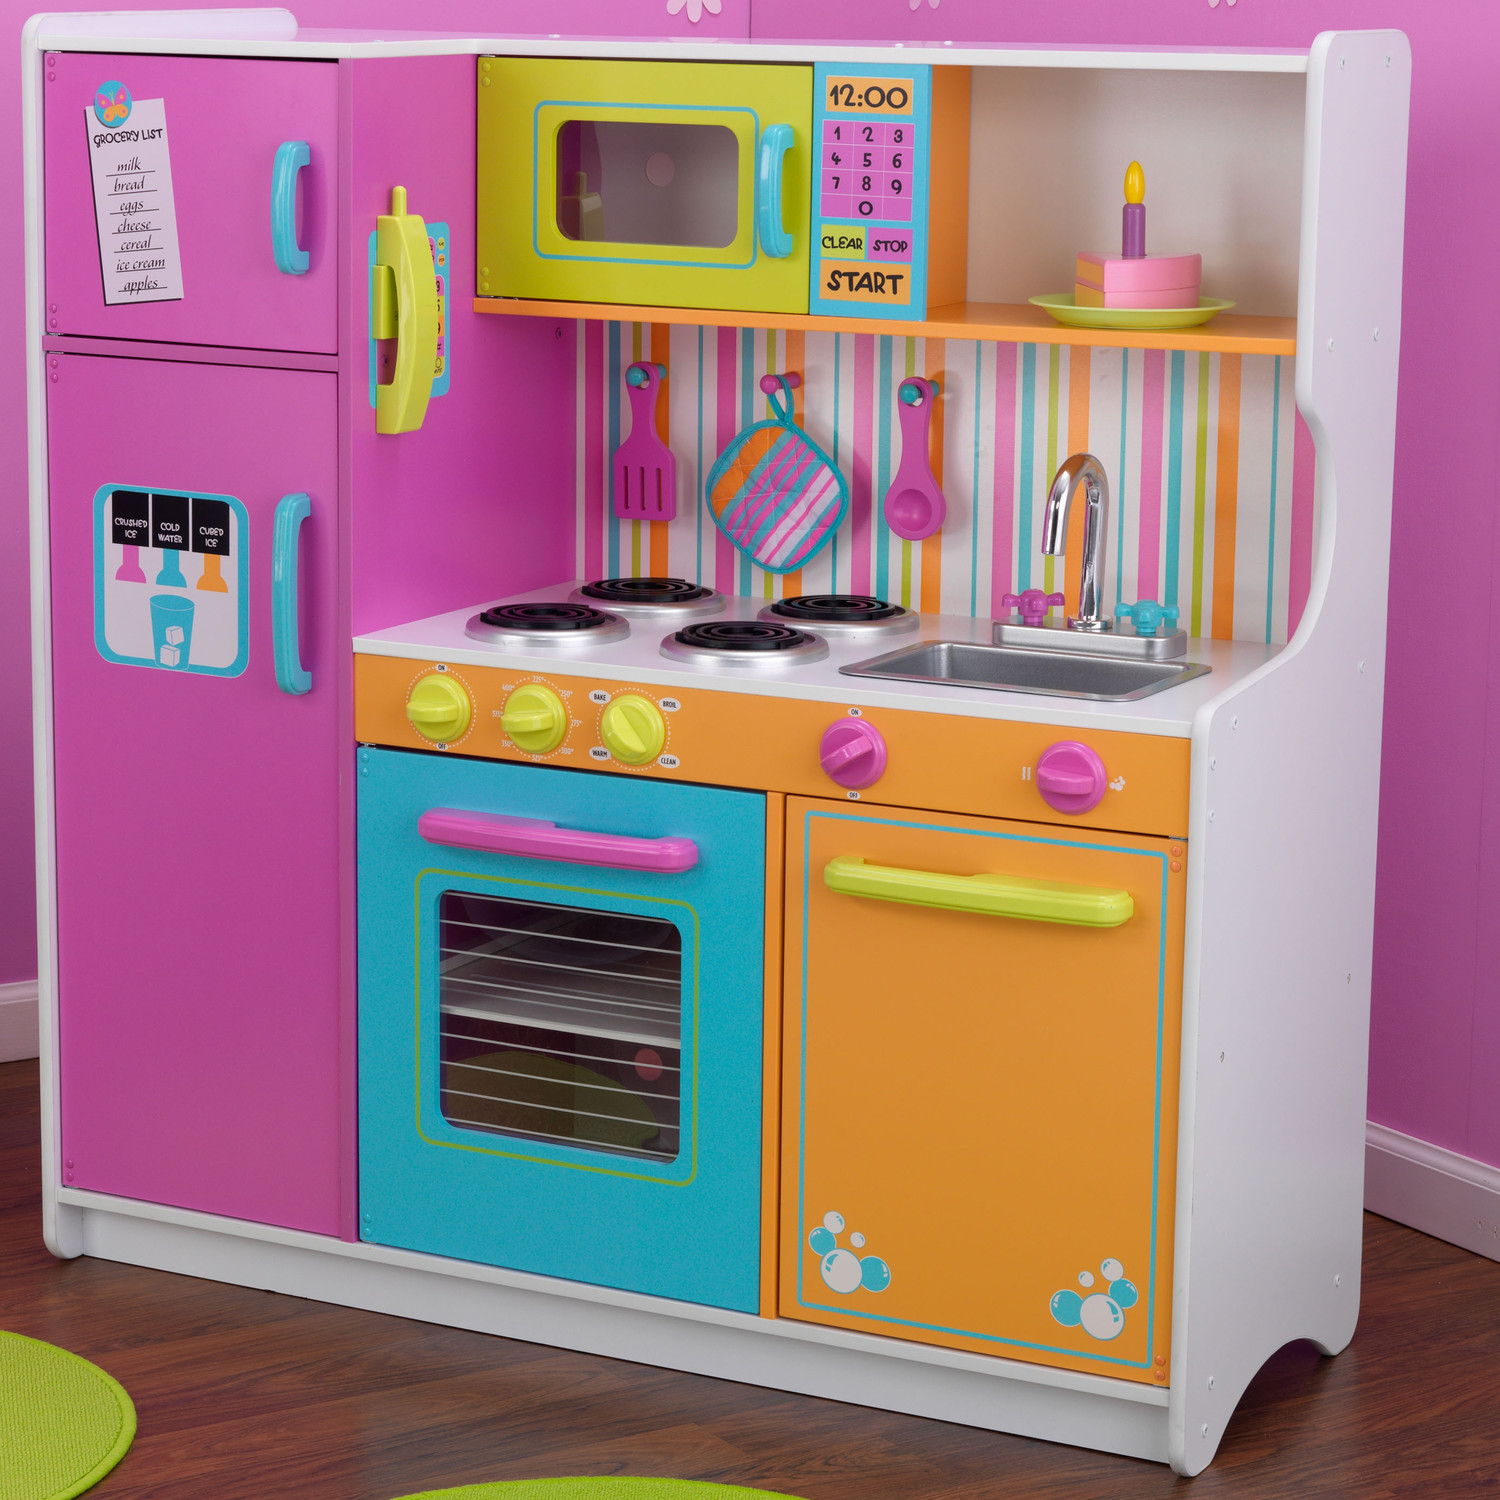 Toy Kitchen Sale Canada